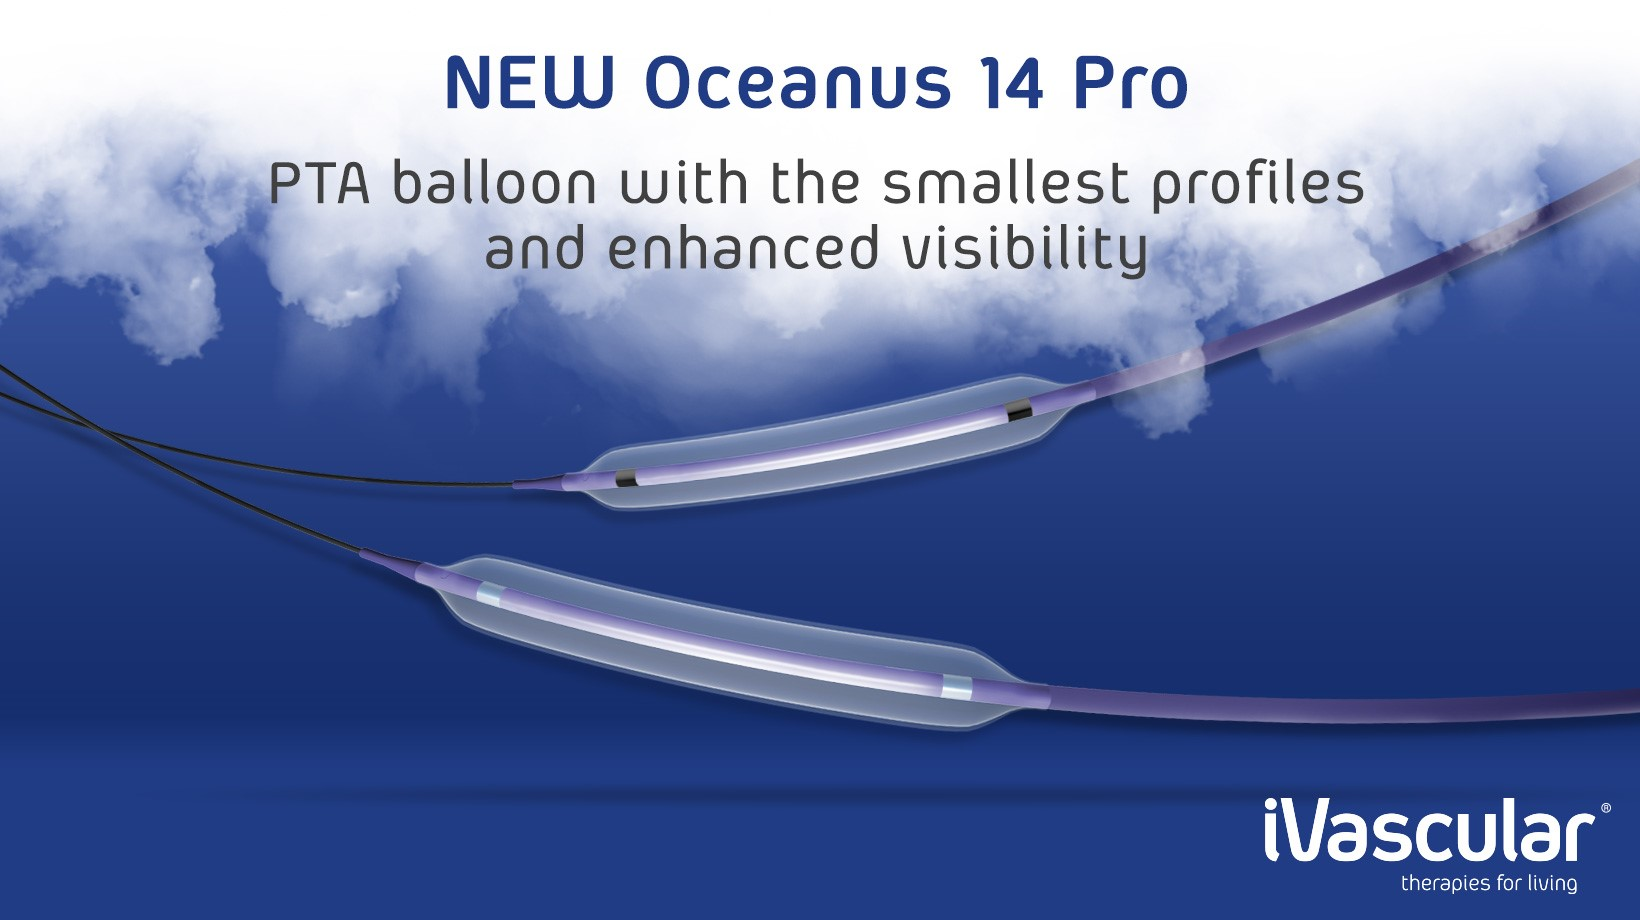 Oceanus 14 Pro, PTA balloon catheter receives CE Mark Approval